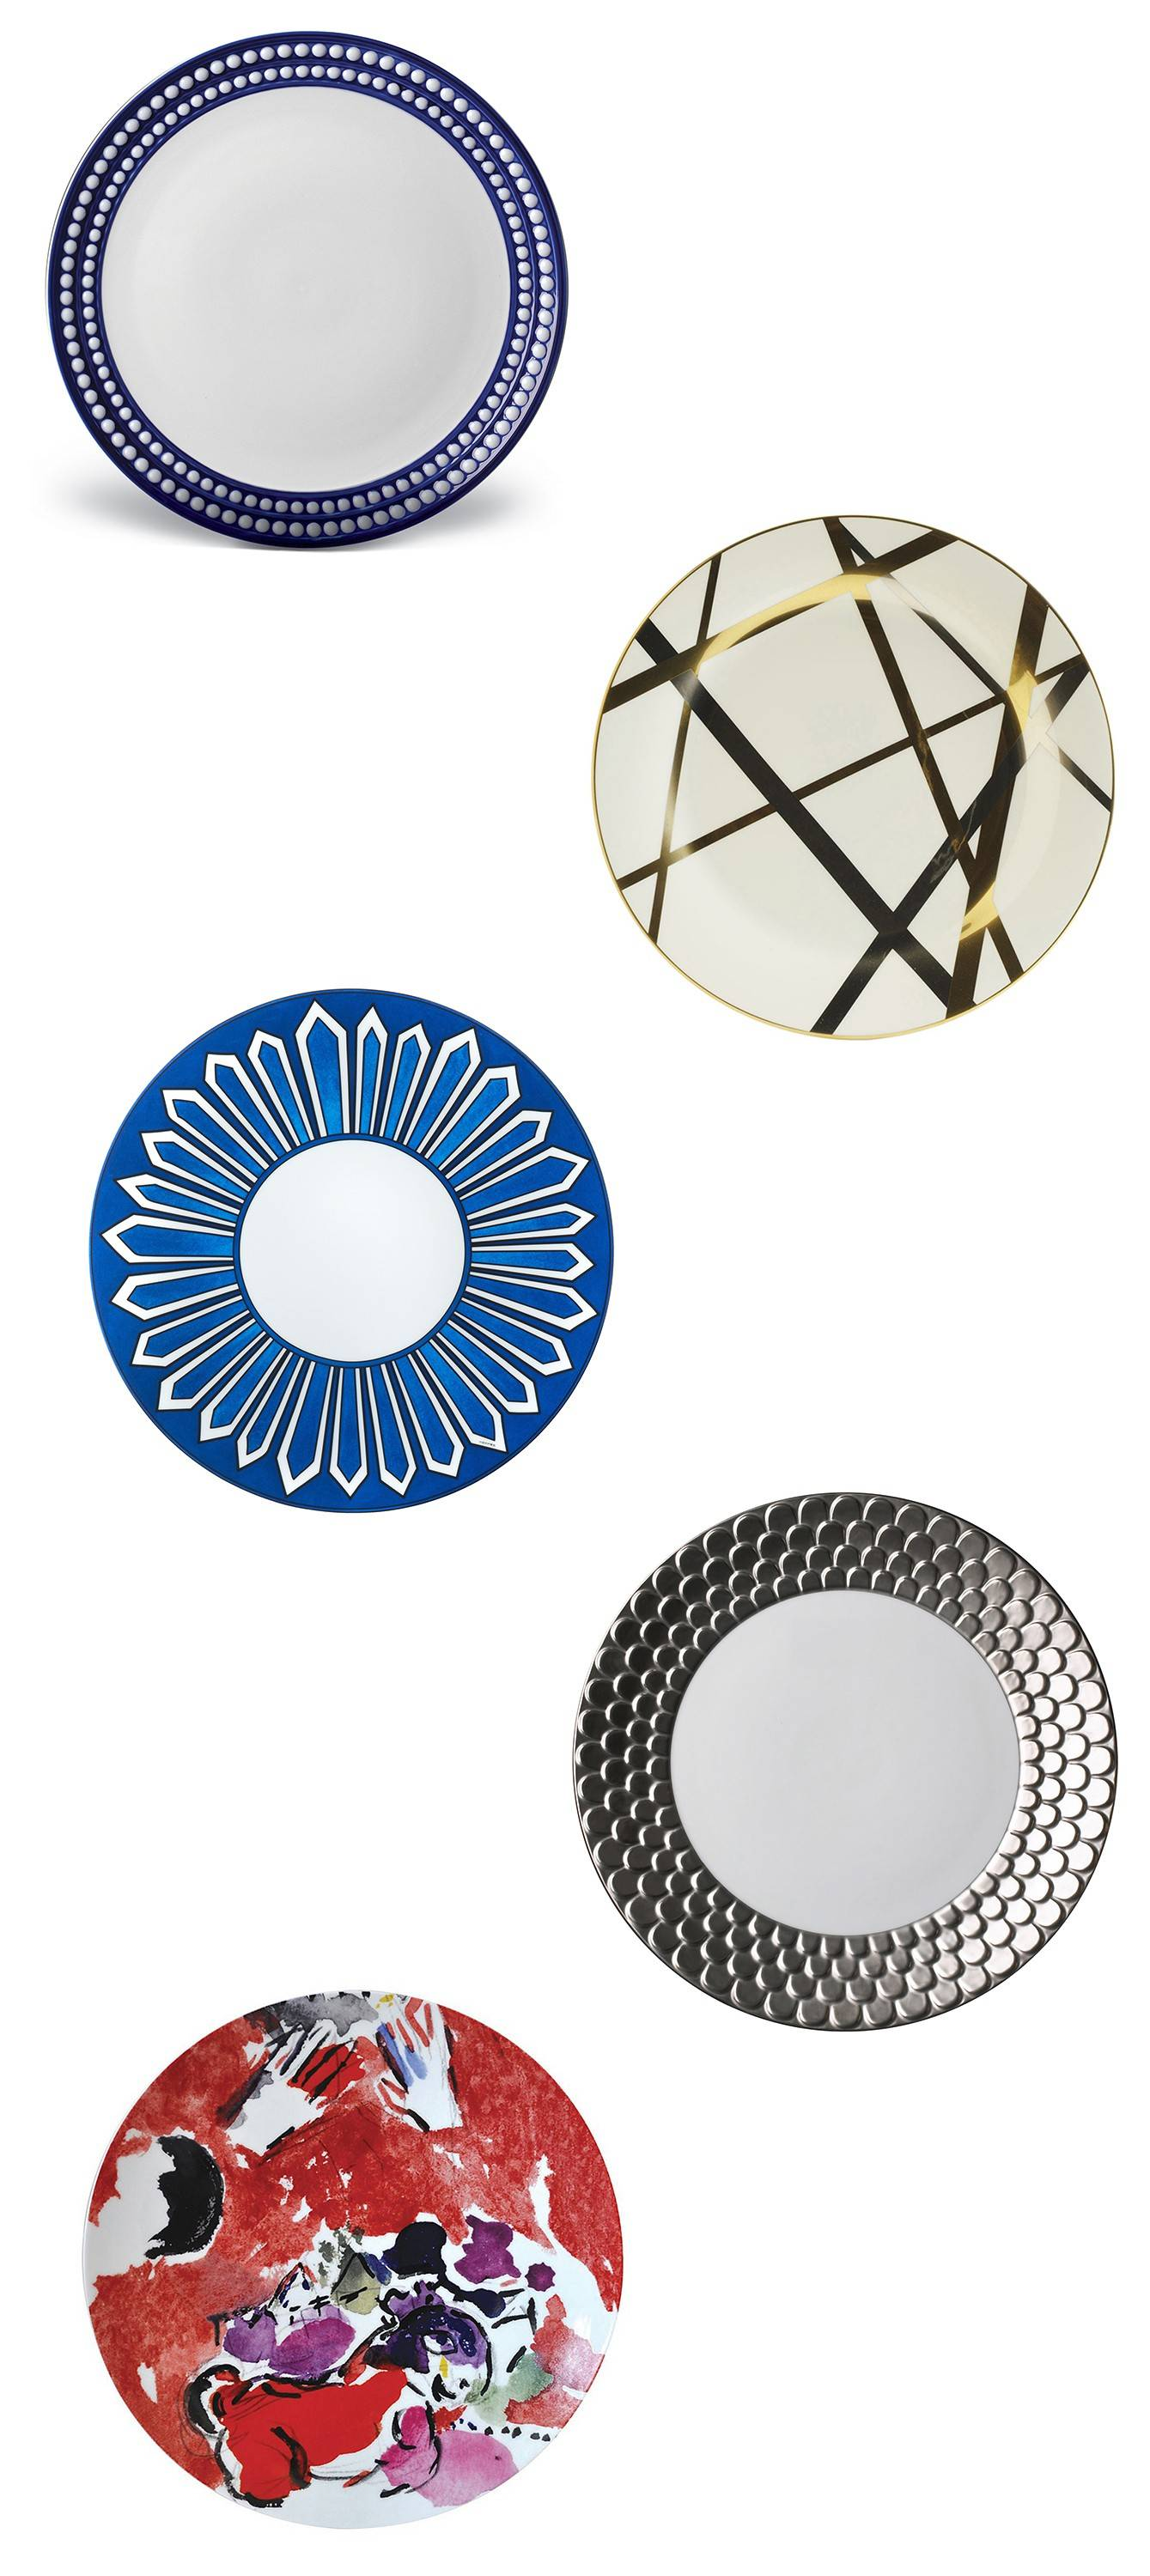 Today\u0027s dinnerware has much variety gold and platinum edging colorful patterns squares and  sc 1 st  Daily Herald & The fashion plates of dinnerware